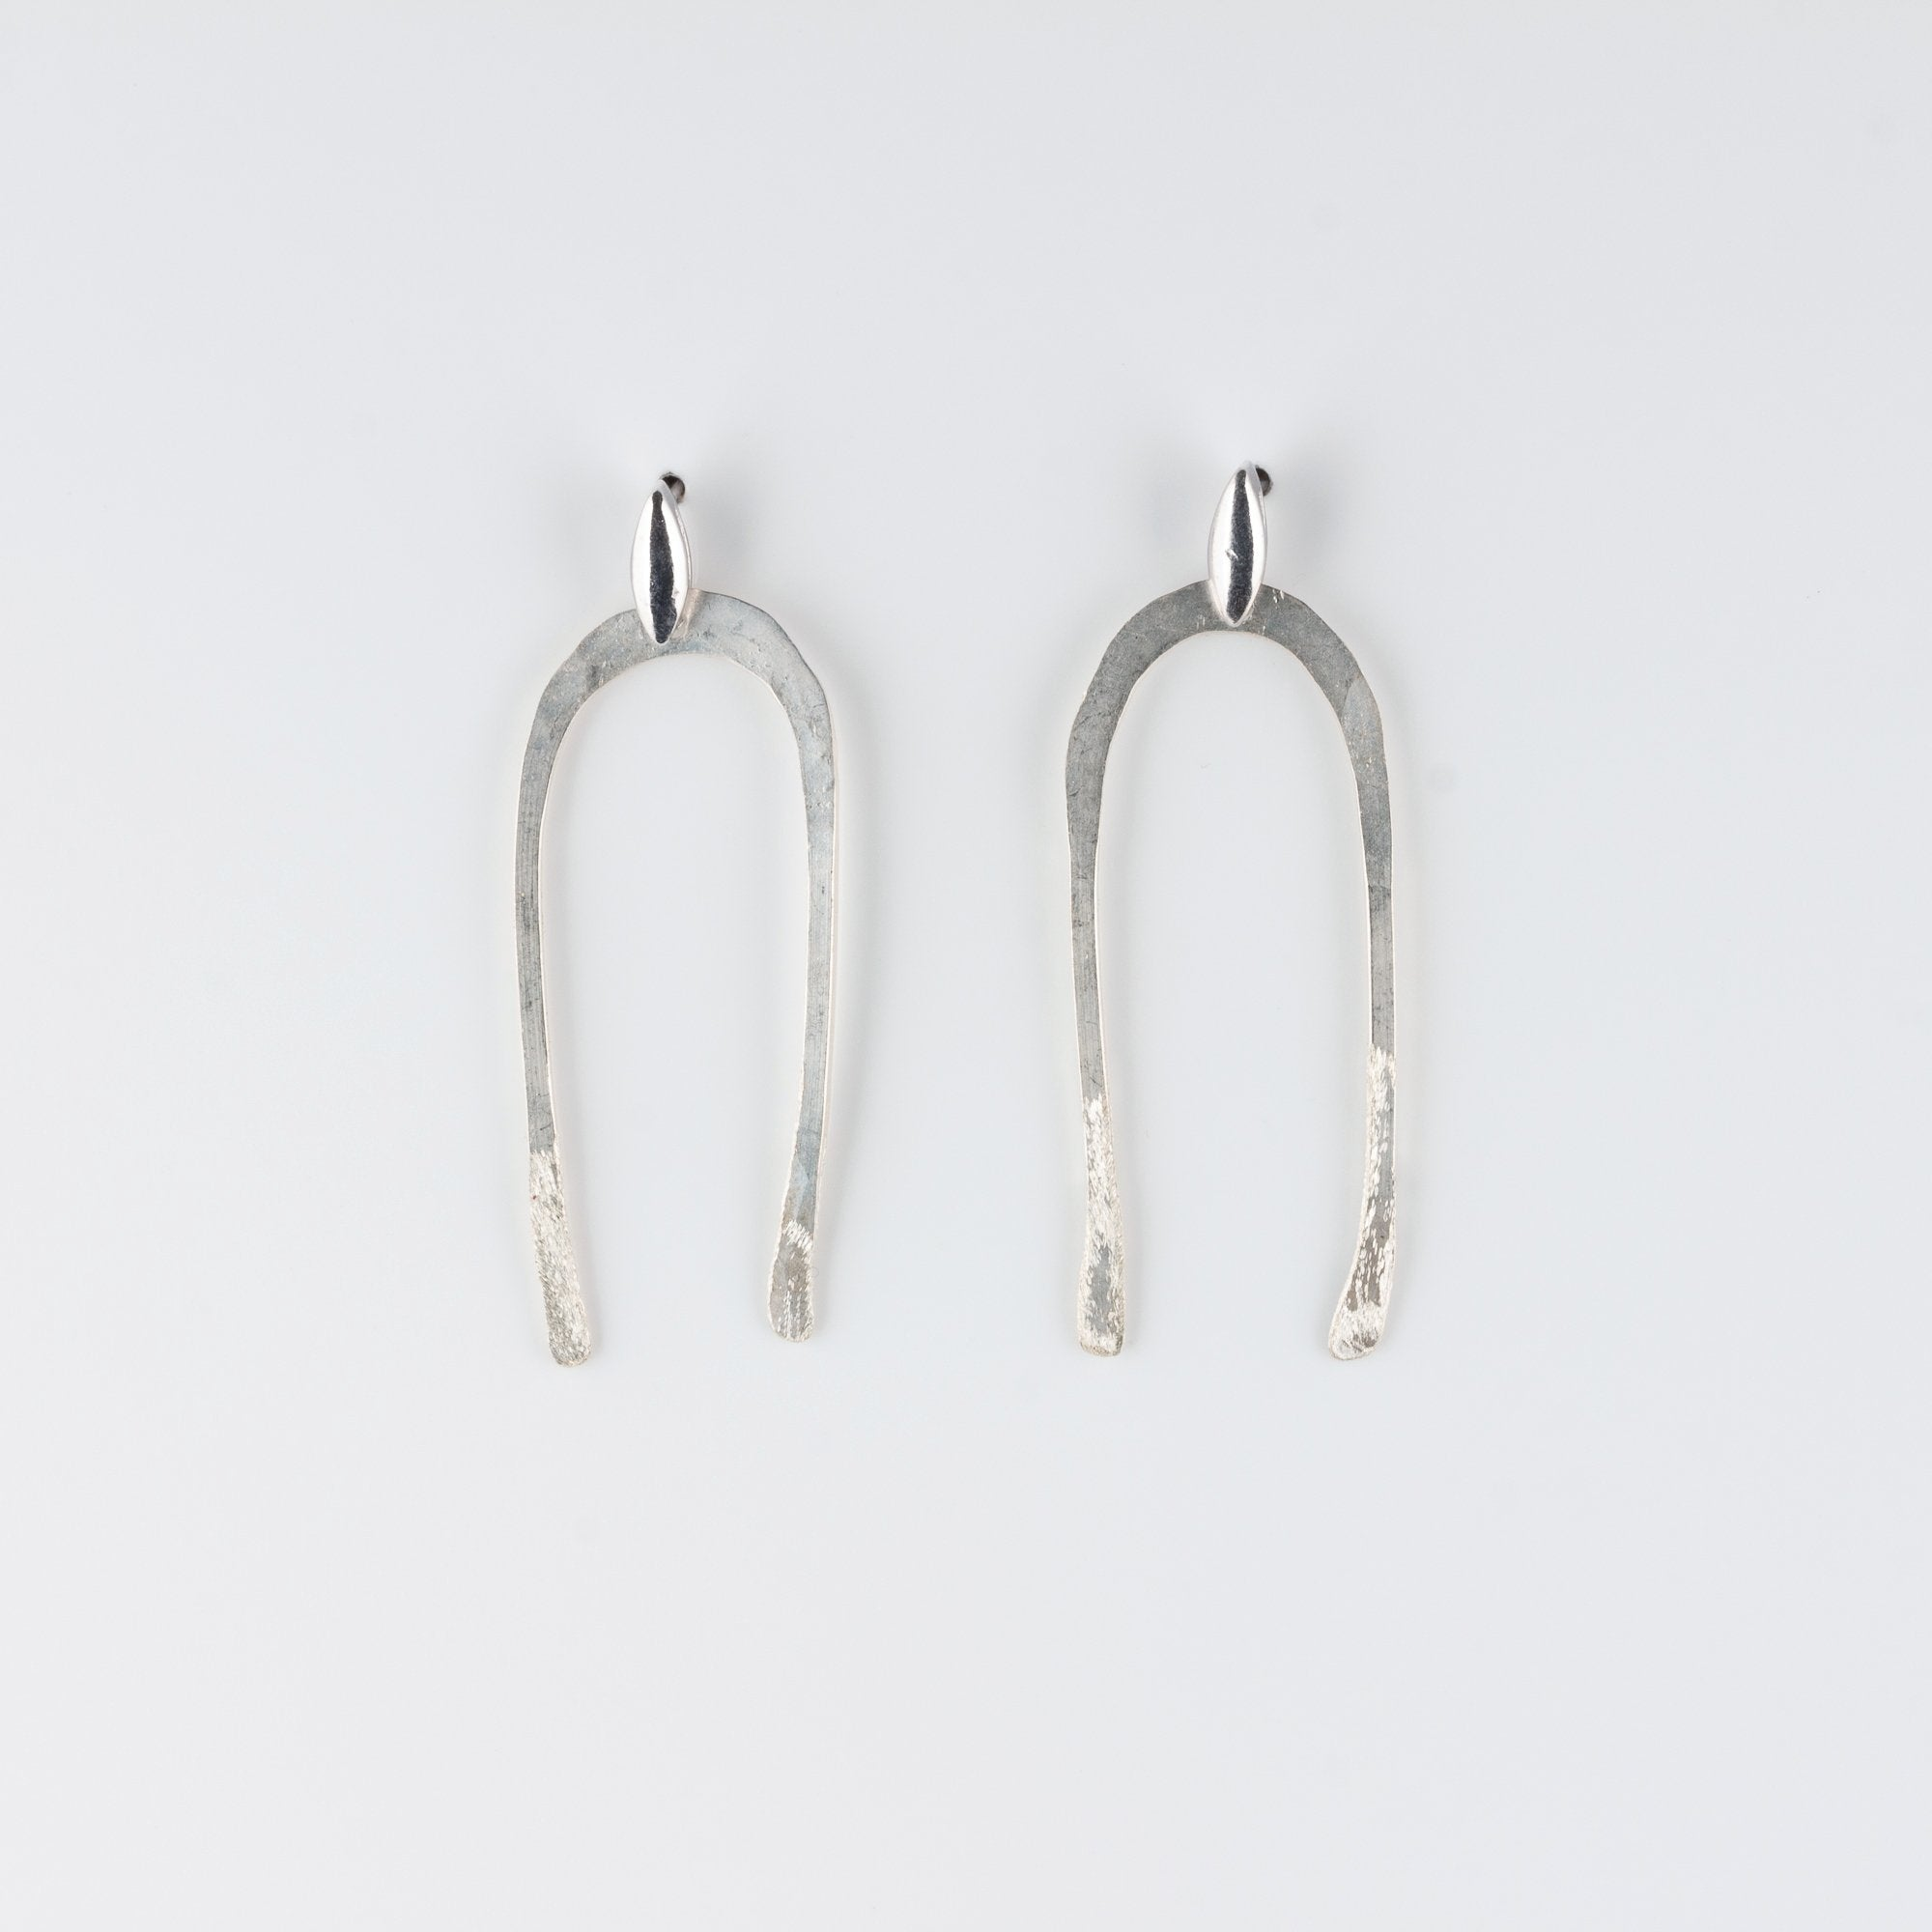 ARCO  STERLING SILVER POST EARRINGS // MEDIUM